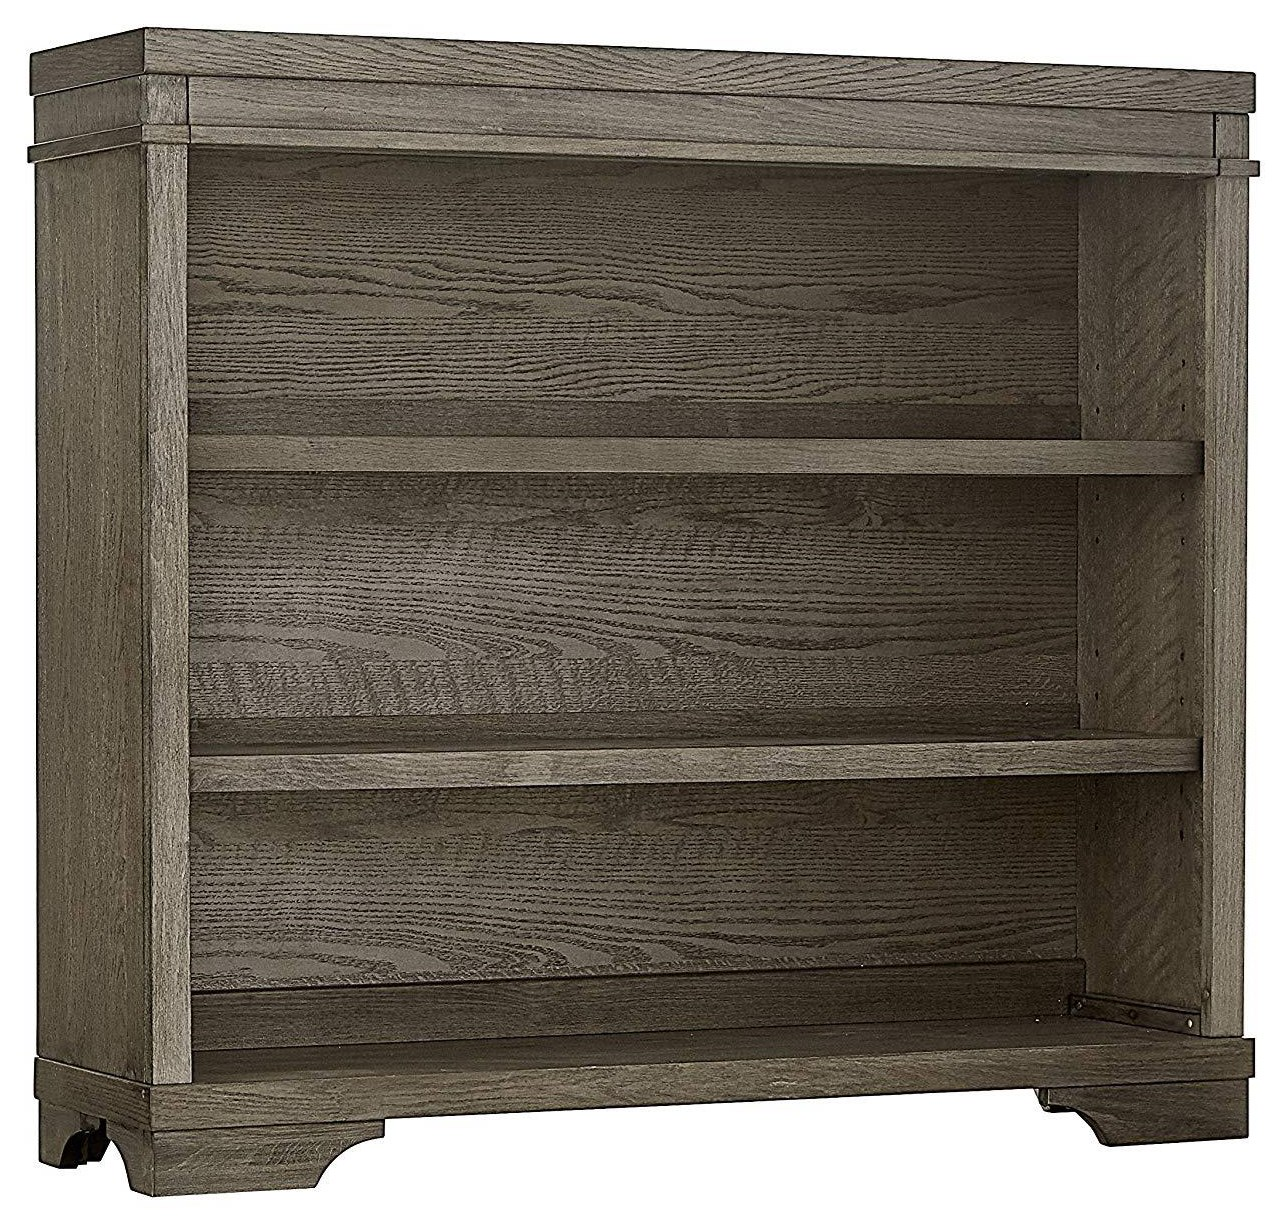 Kemp Kemp Bookcase by Westwood Design at Morris Home